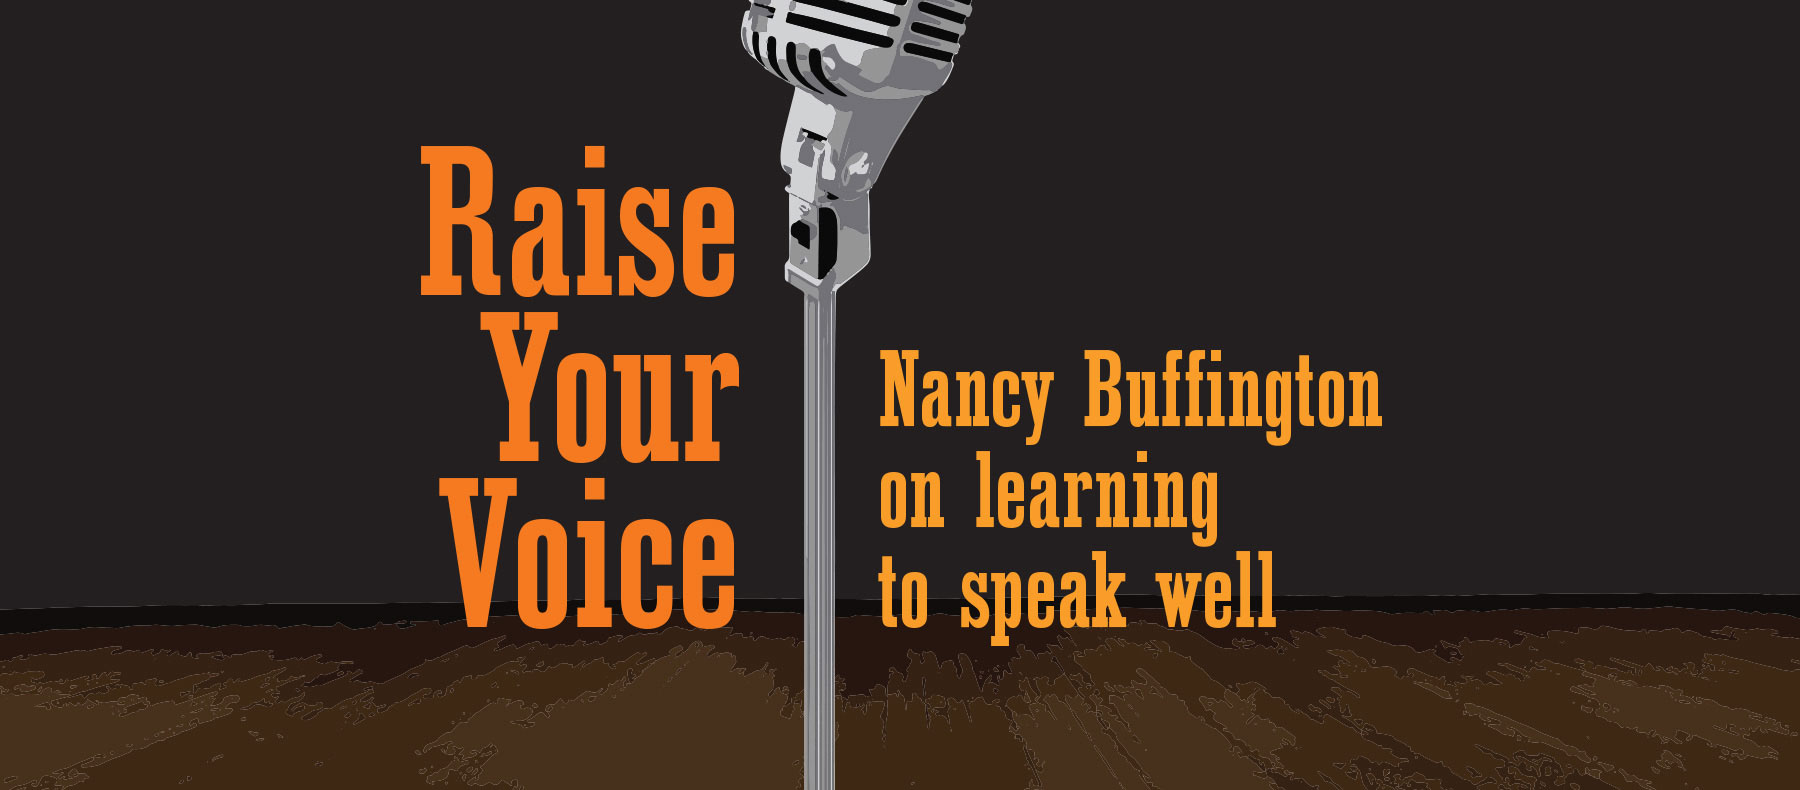 Raise Your Voice - Nacny Buffington on learning to speak well